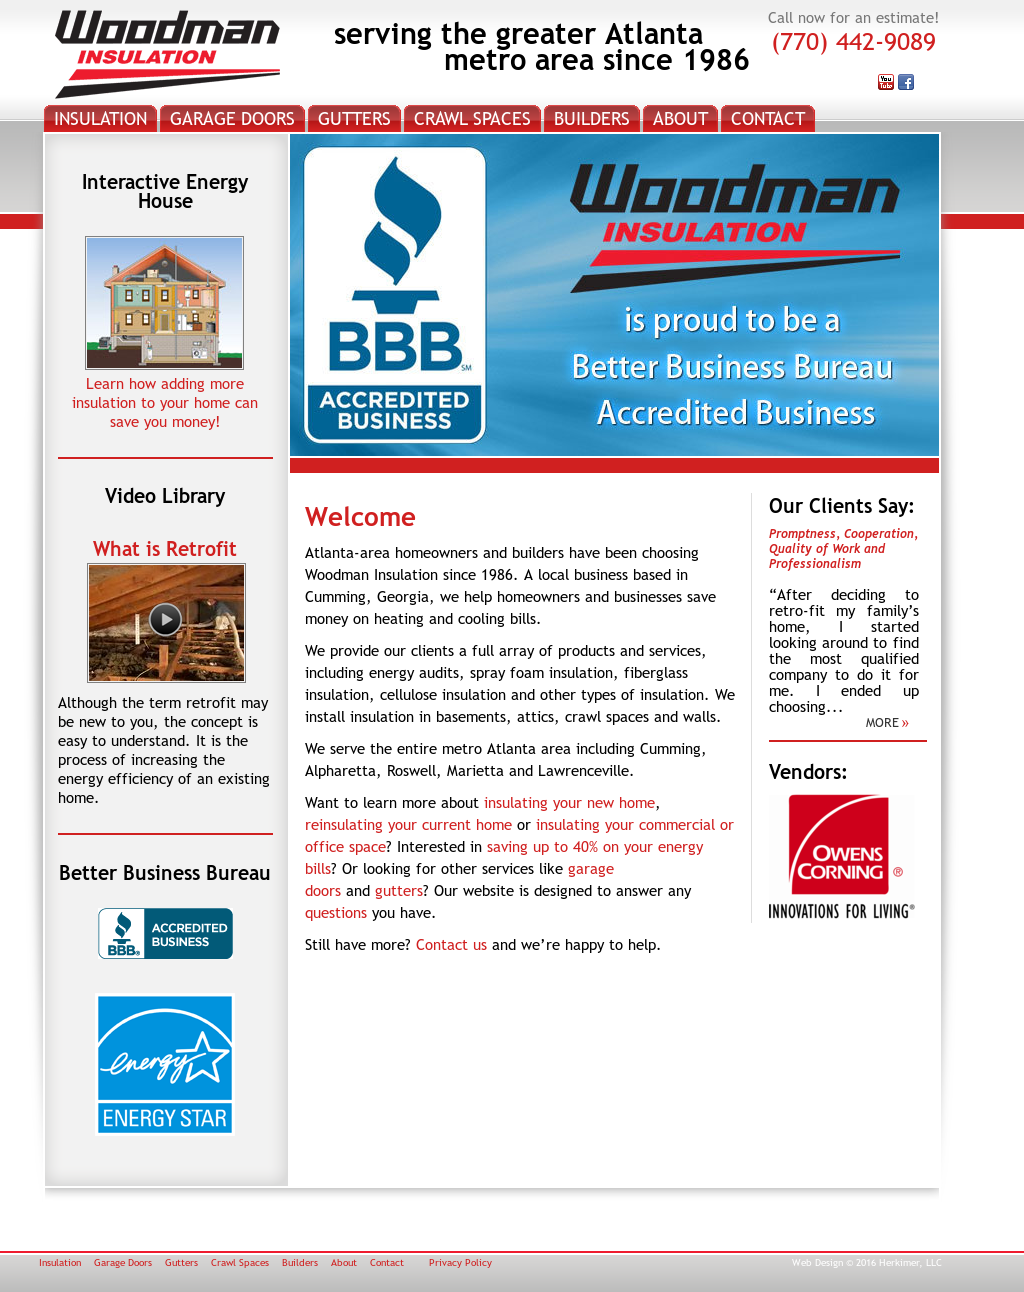 Woodman Insulation Competitors, Revenue and Employees